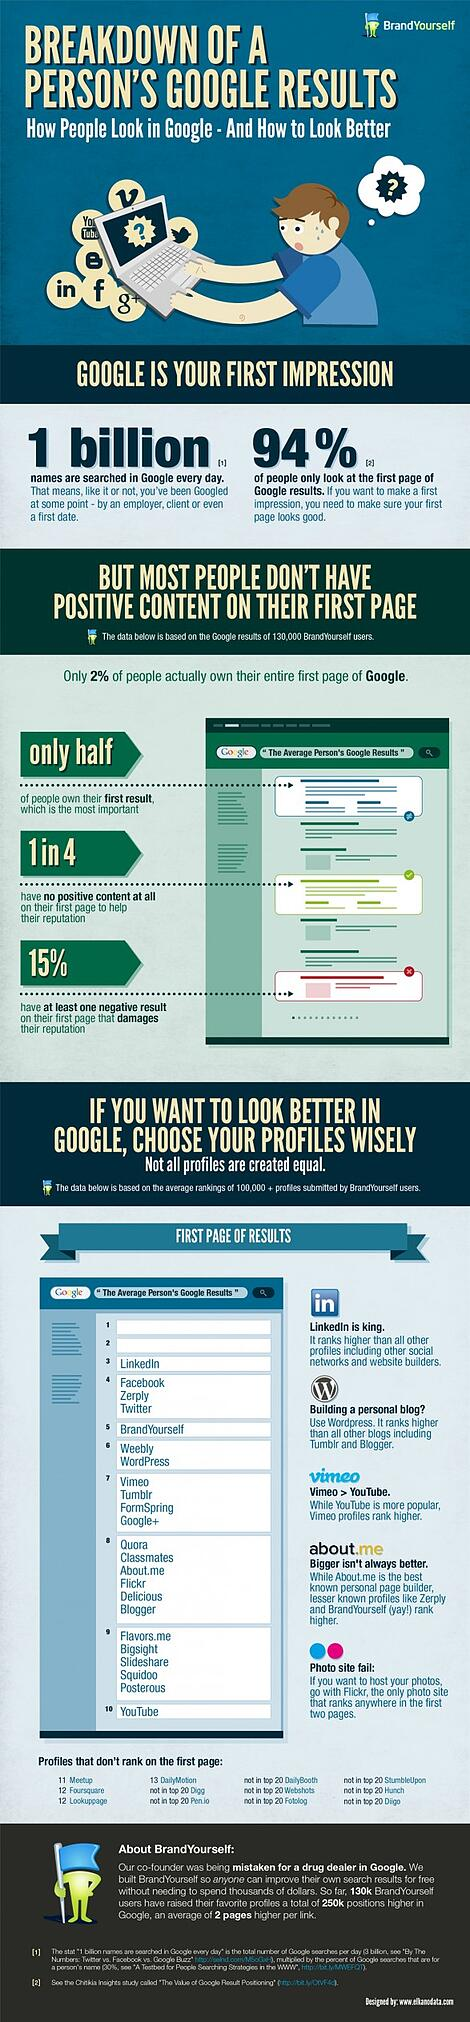 Want to Look Better in Google? Better Read This First